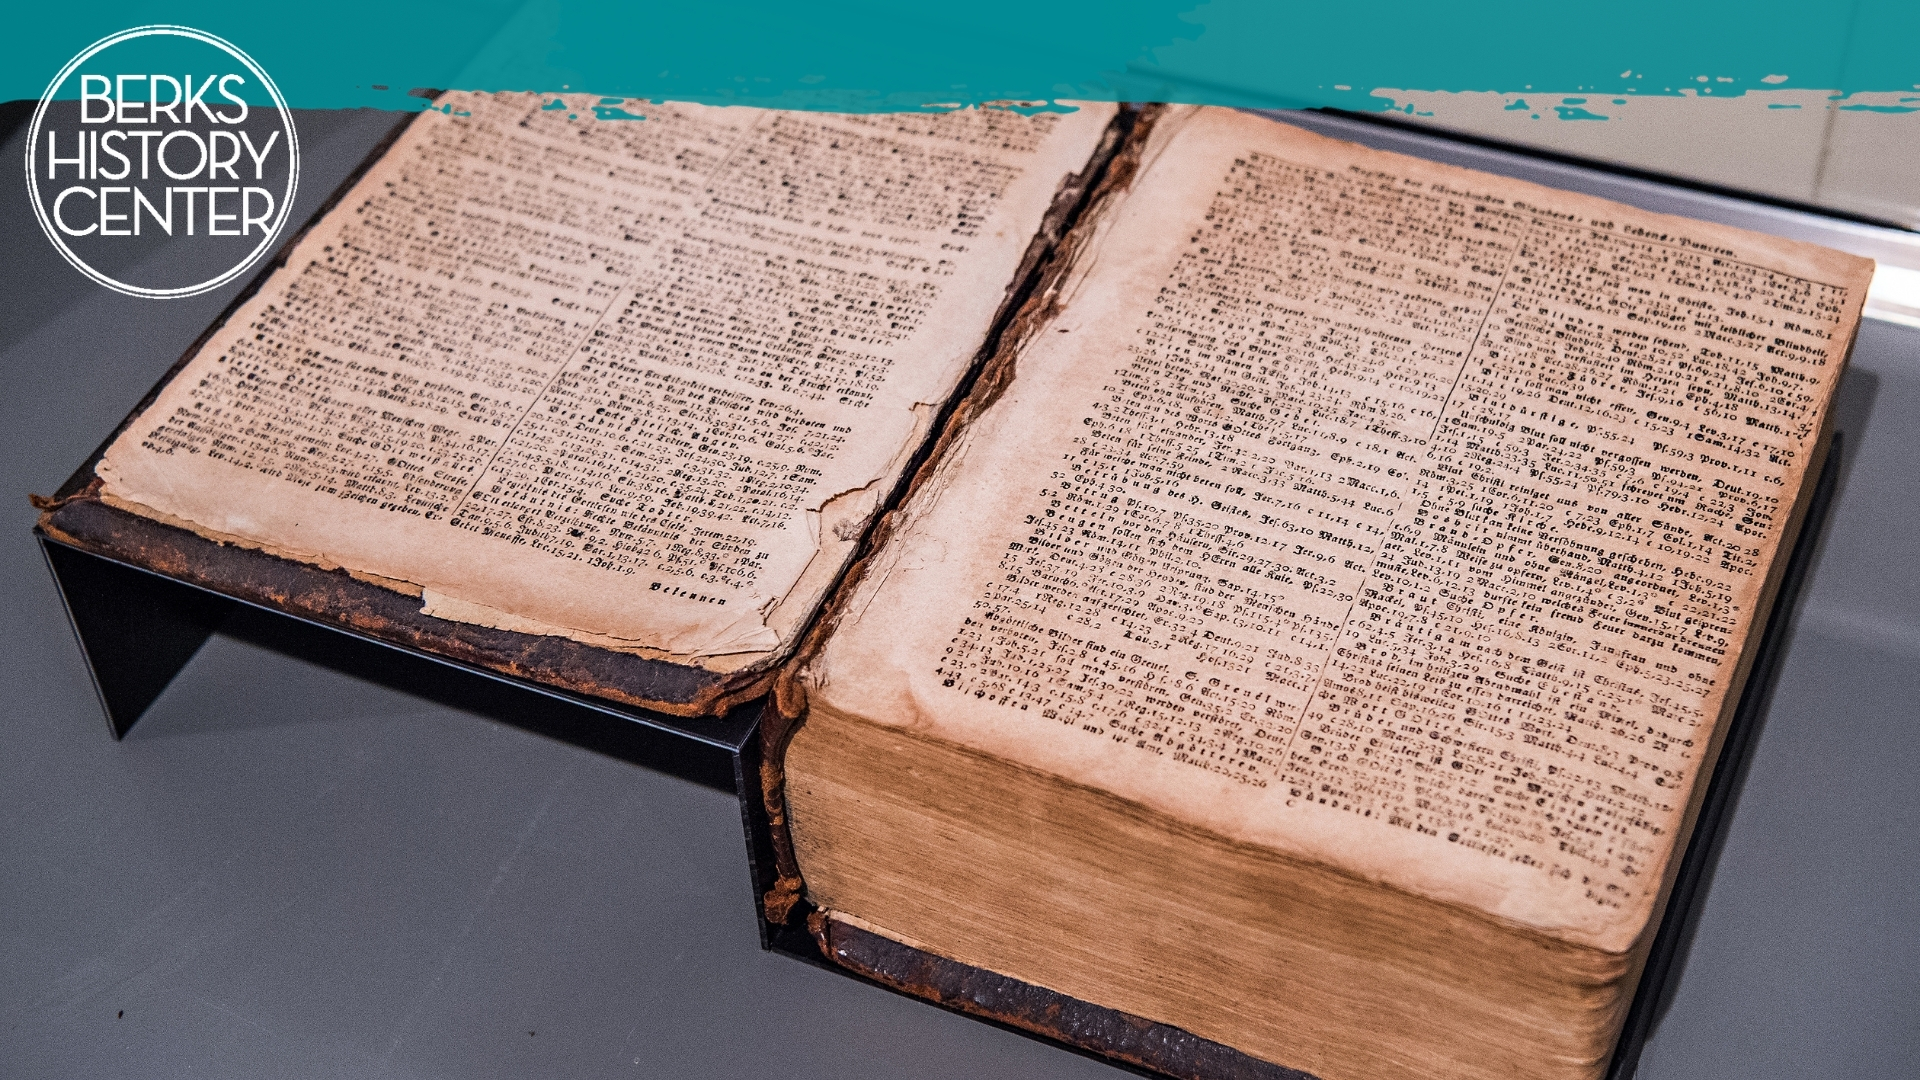 """Collection image of an open book, """"Gottlob Jungman Bible, 1805"""" with white circle Berks History Center logo and 'BHC Blue' paint stripe along top."""